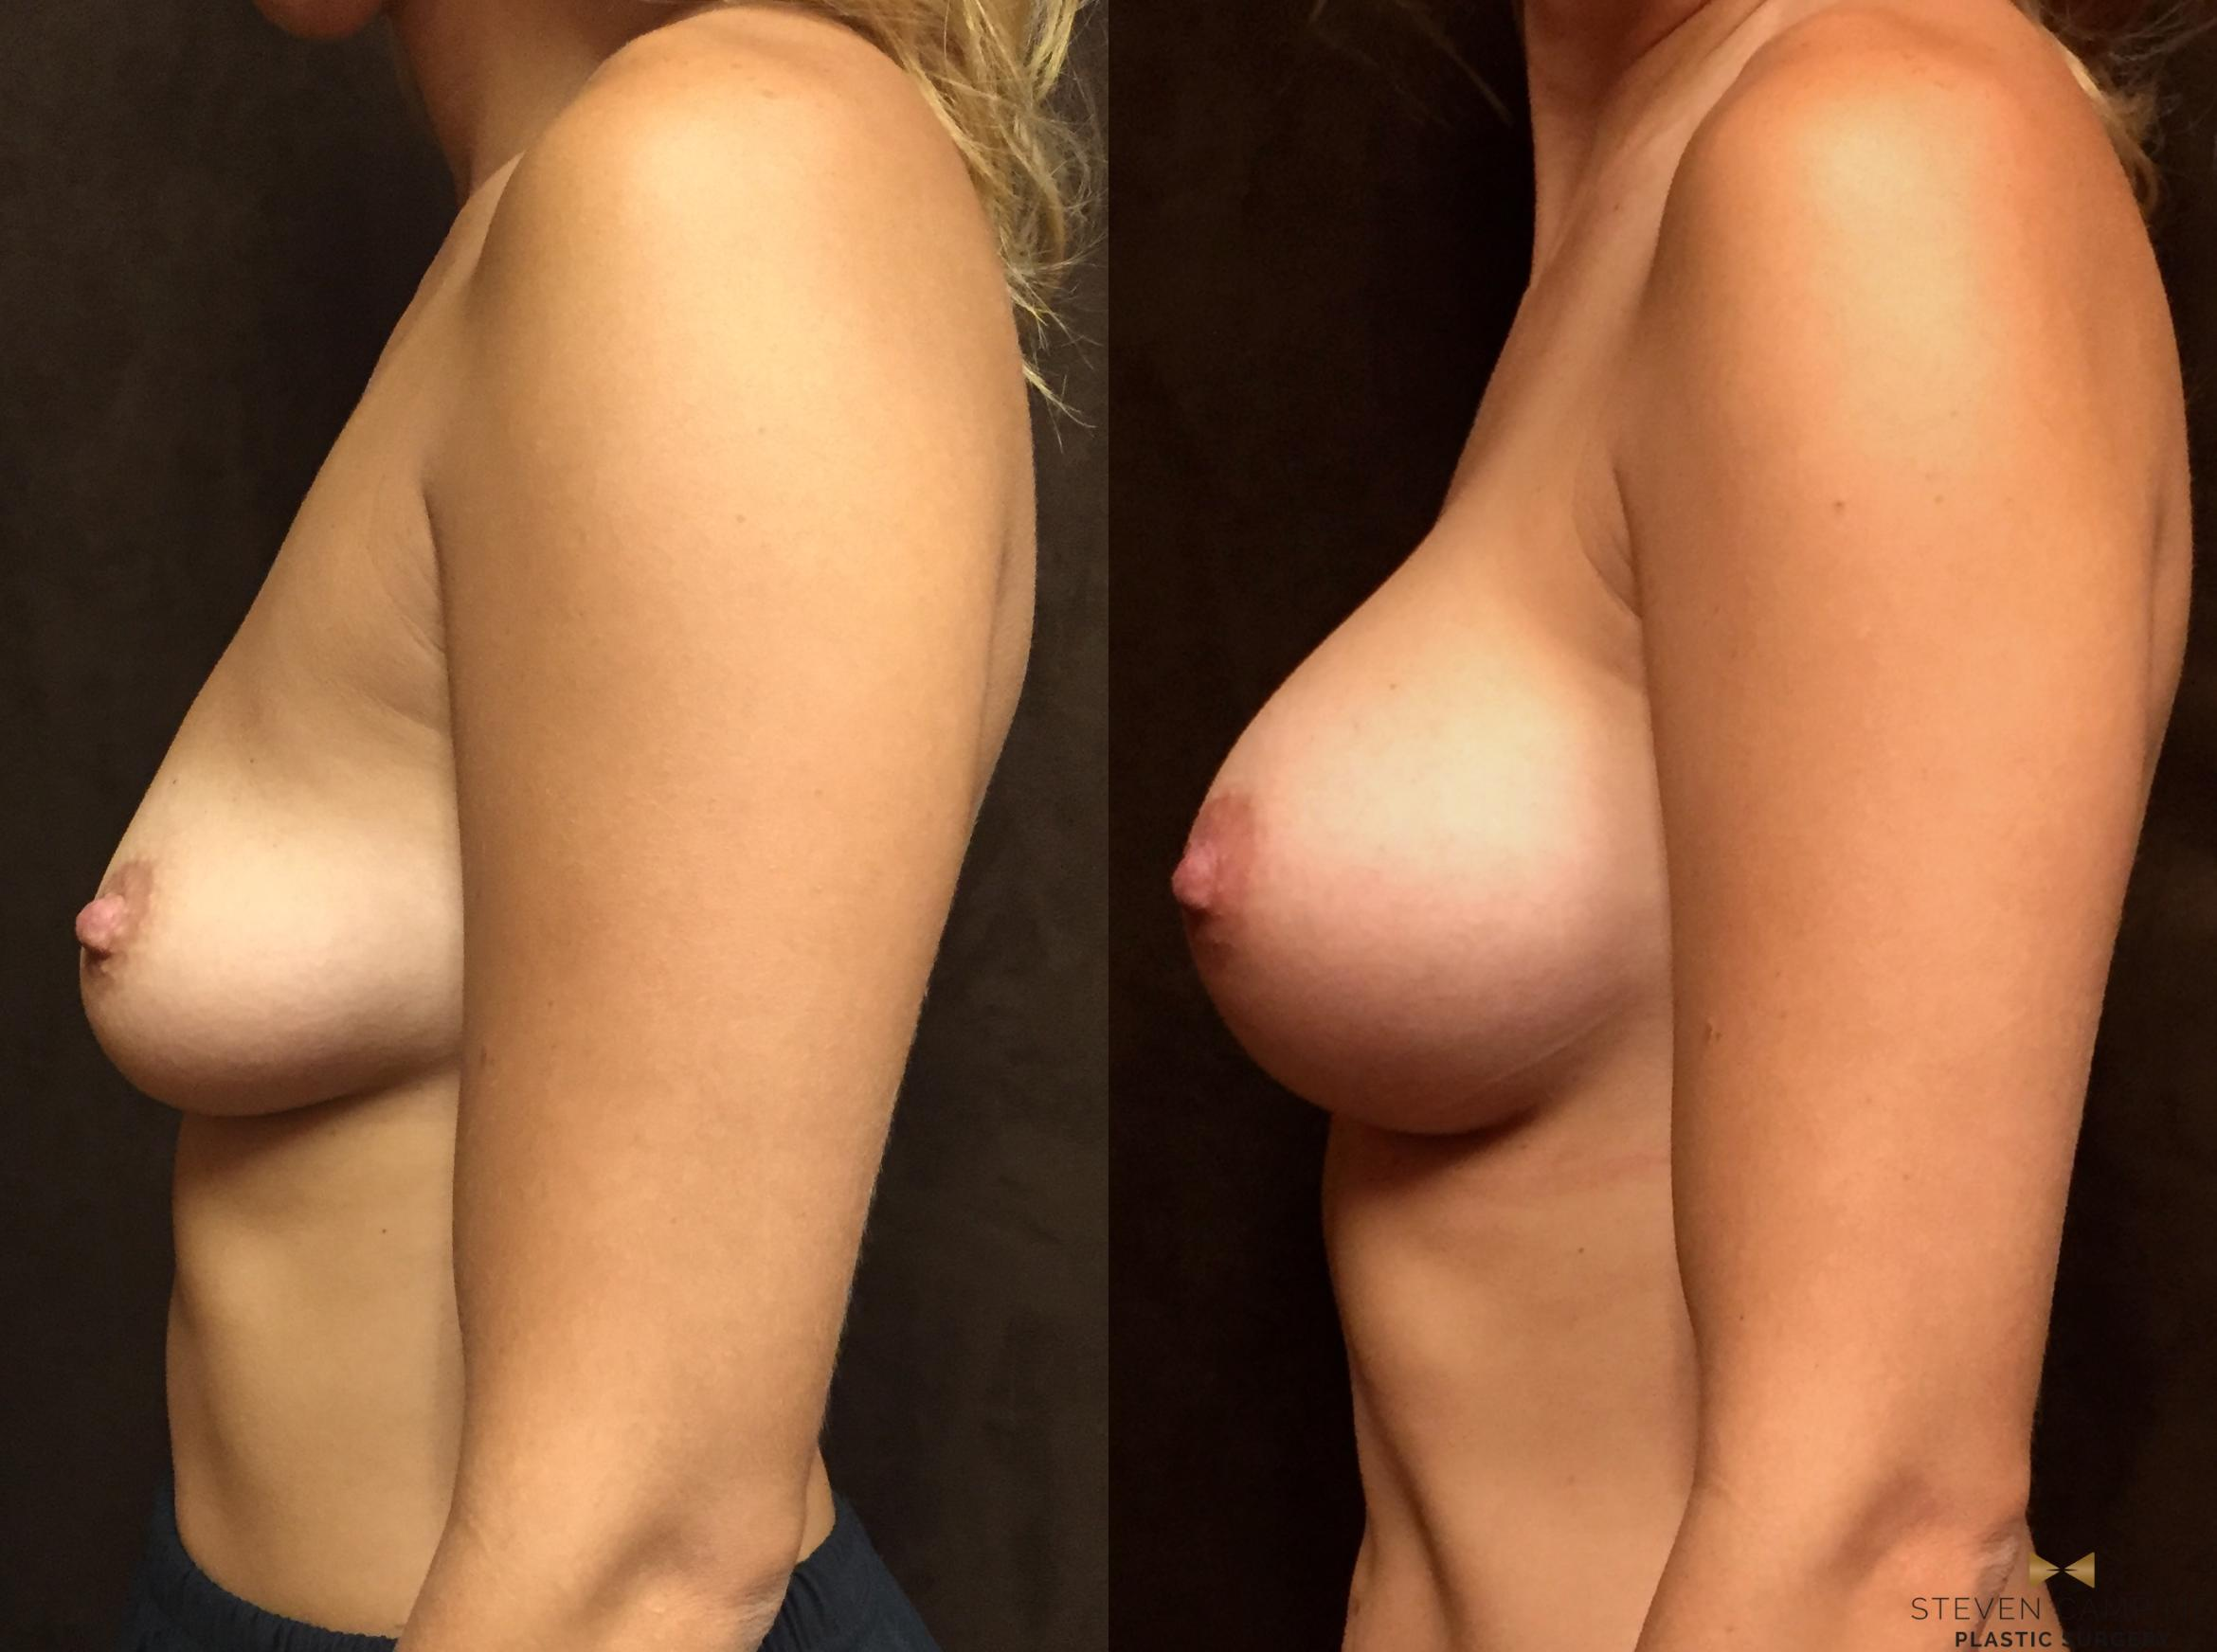 Breast Augmentation Before & After Photo | Fort Worth, Texas | Steven Camp MD Plastic Surgery